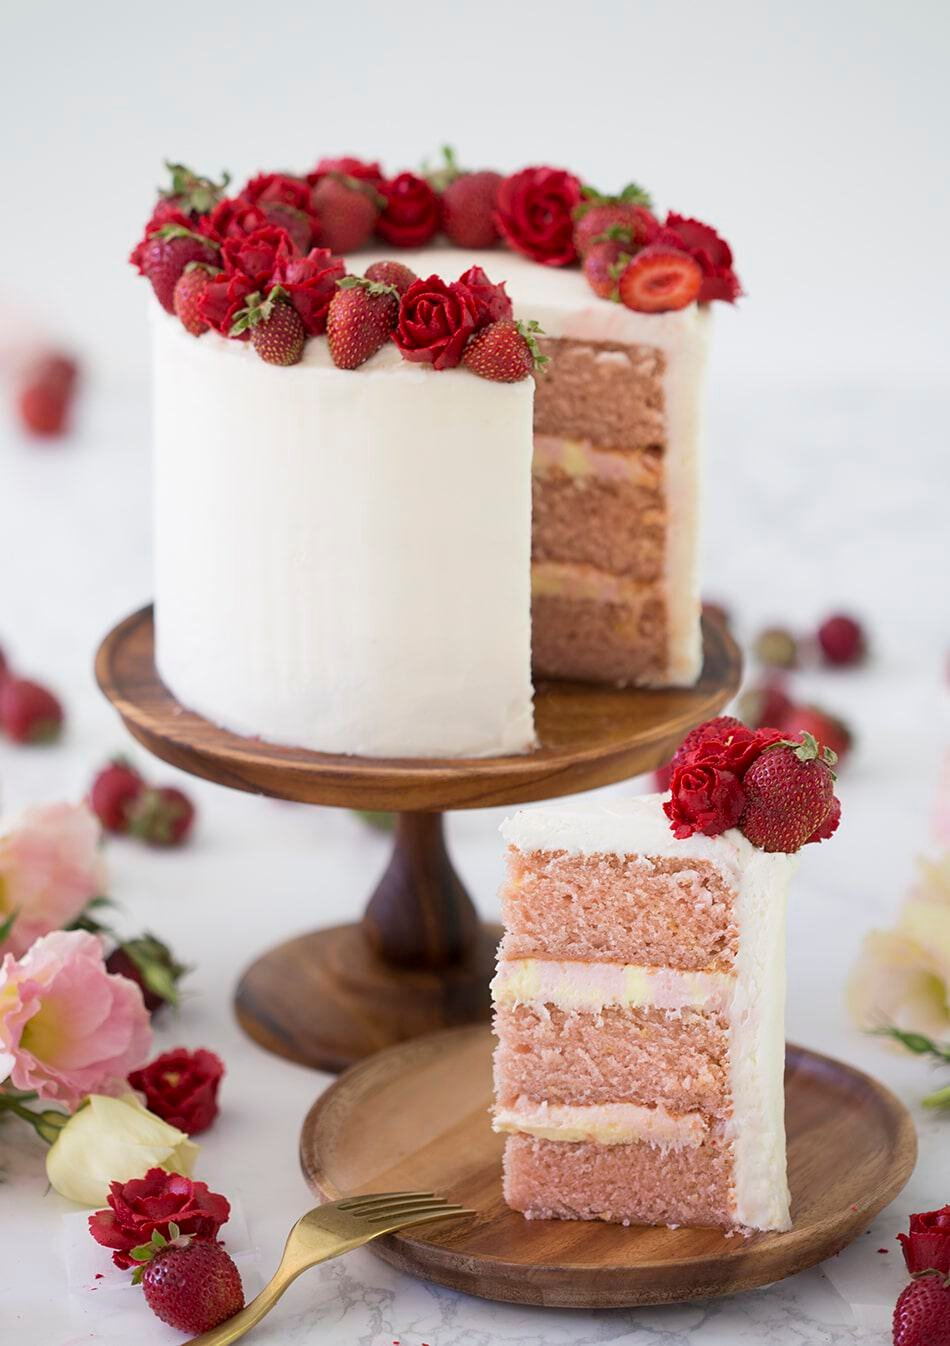 Strawberry Cake - Preppy Kitchen